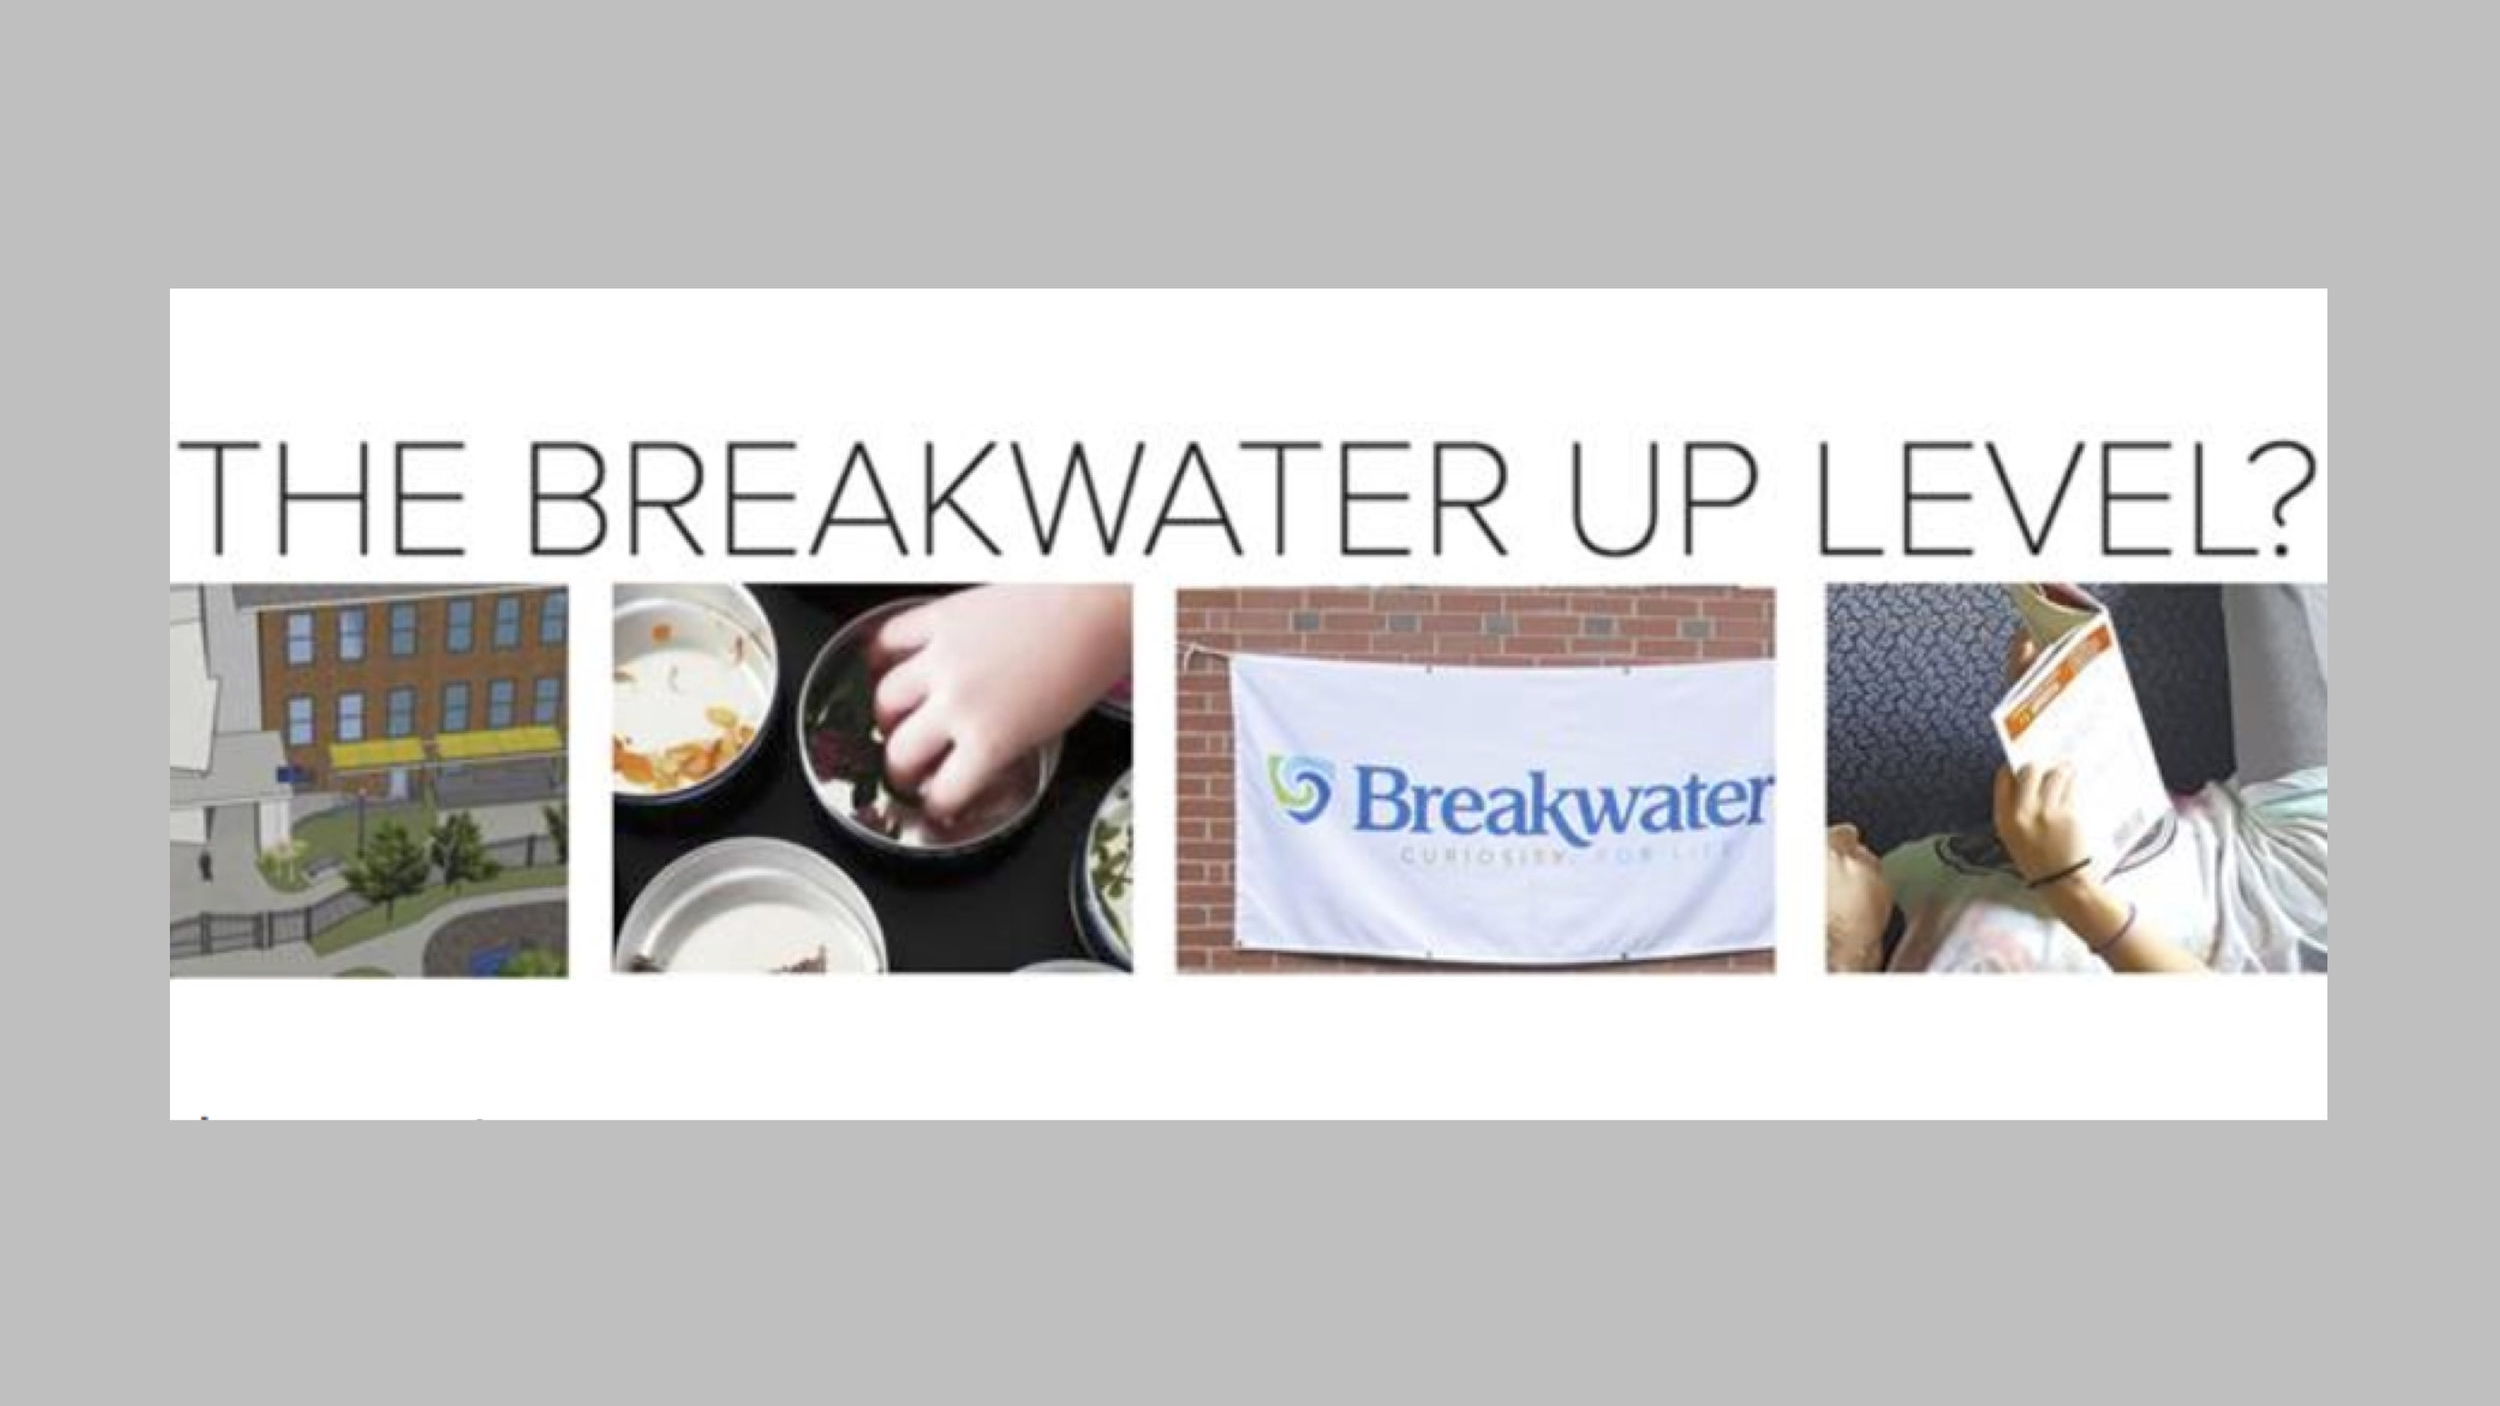 February 2017 - This month's Newsbreak includes: Up Level 2017 | 7/8 + Civics | Diversity PD | Welcome! | Summer at Breakwater | Events